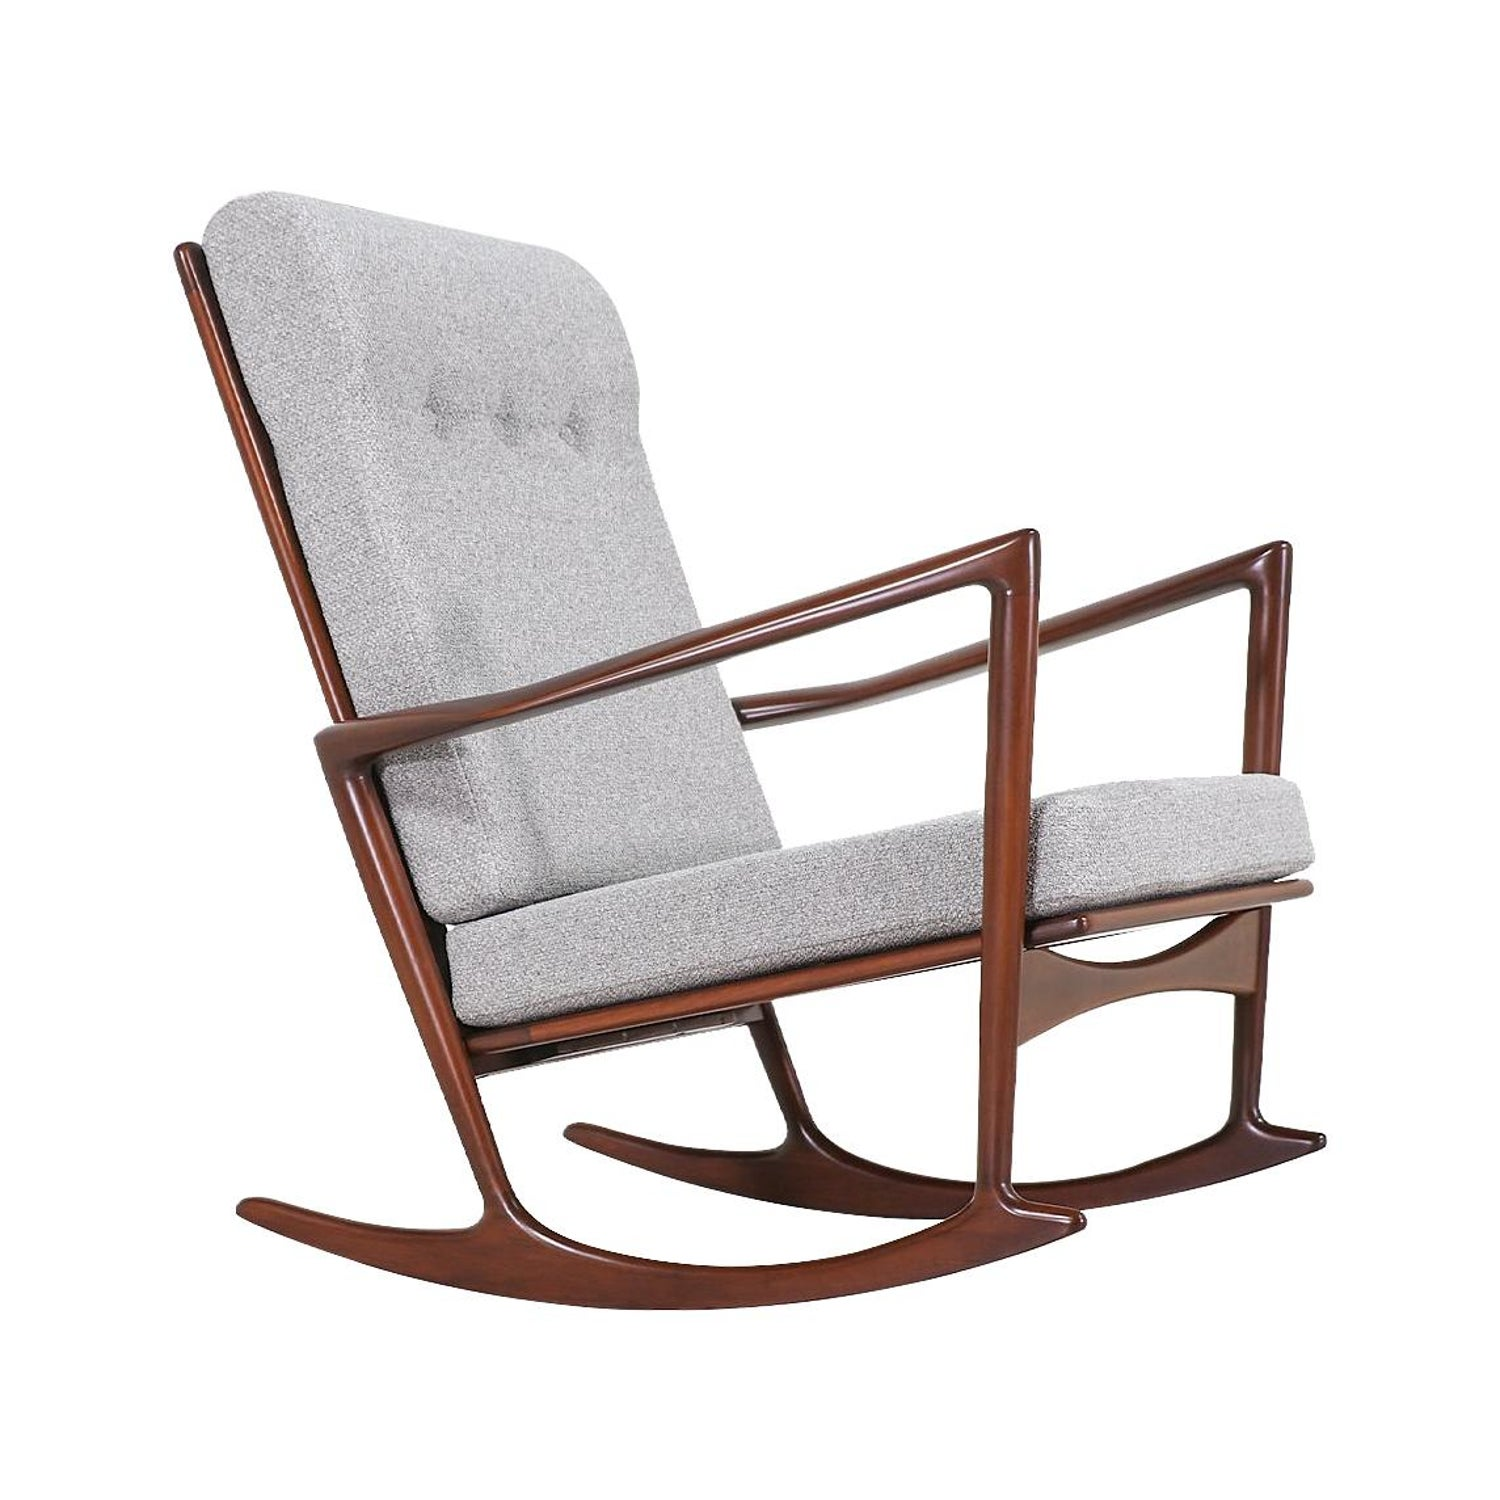 Excellent Antique And Vintage Rocking Chairs 1 013 For Sale At 1Stdibs Ibusinesslaw Wood Chair Design Ideas Ibusinesslaworg